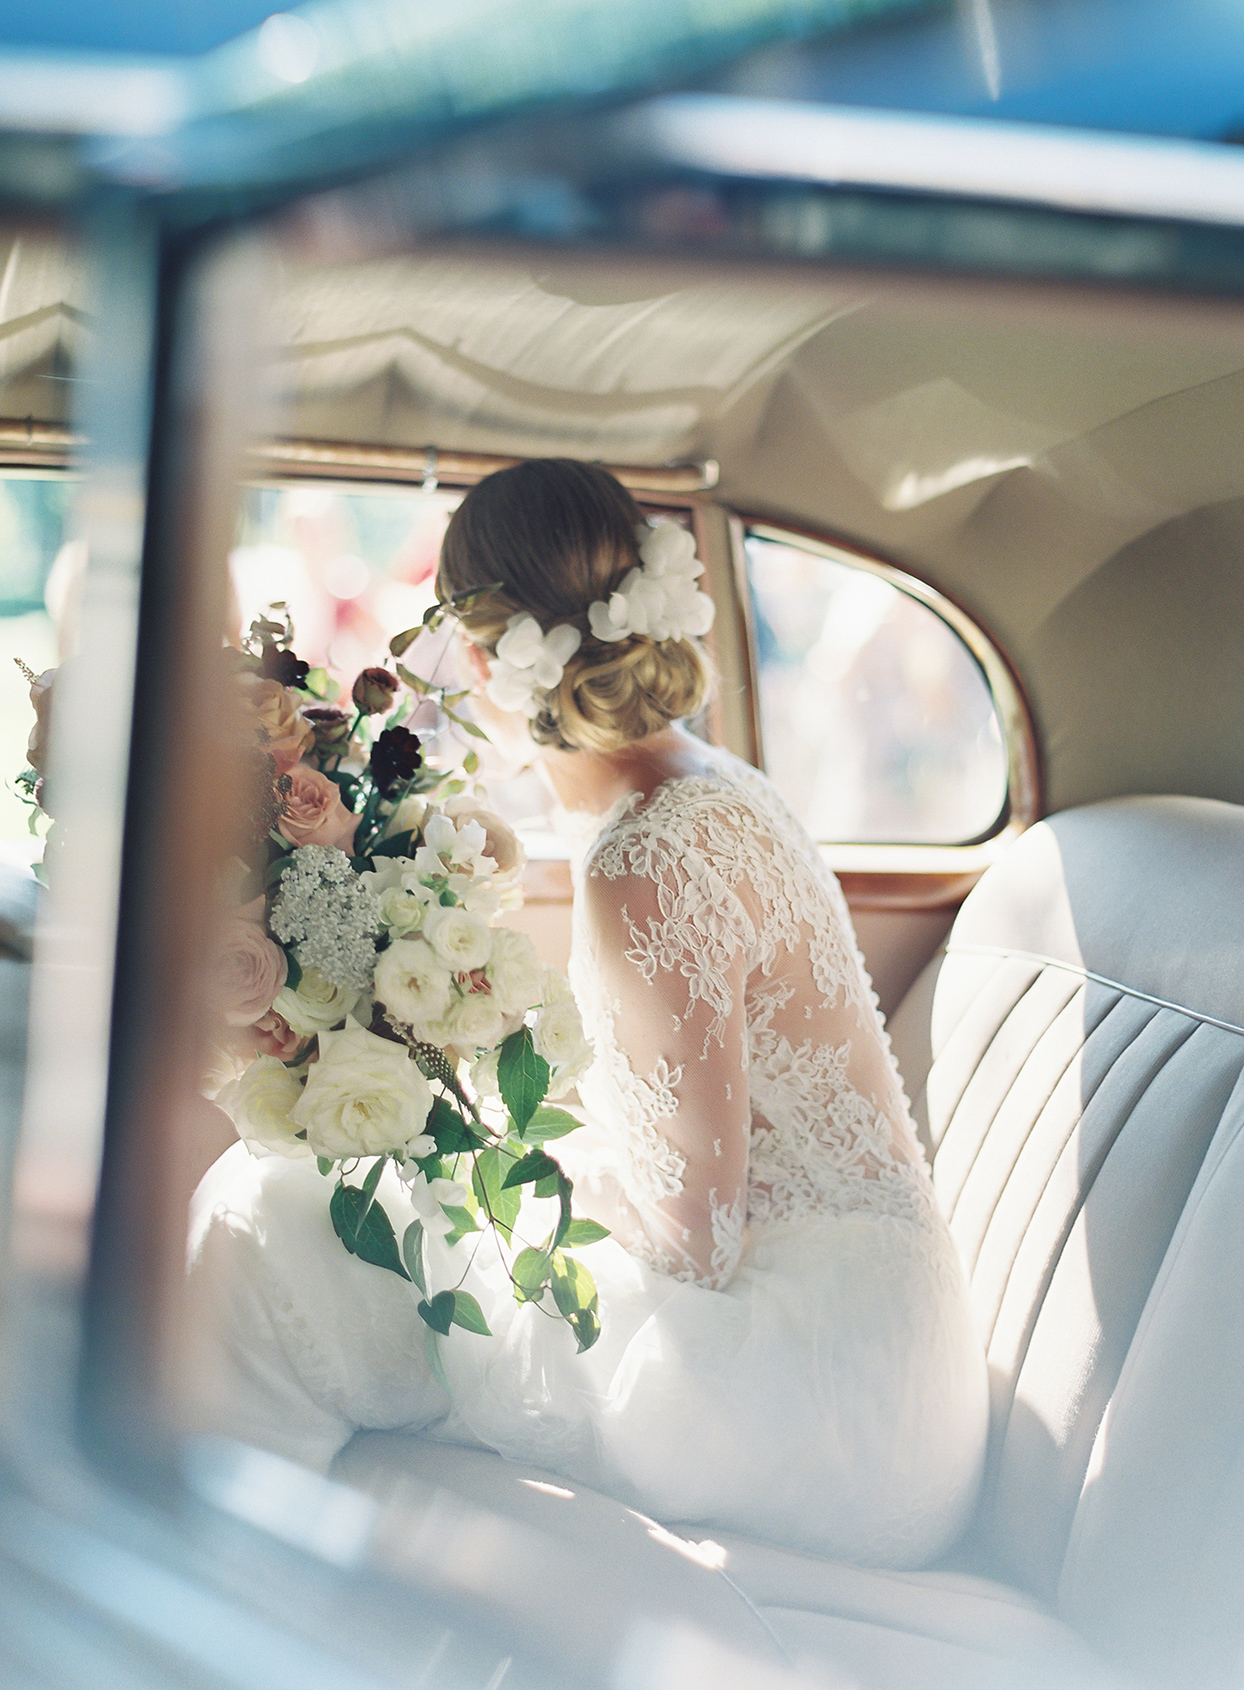 laura alexander wedding bride in car